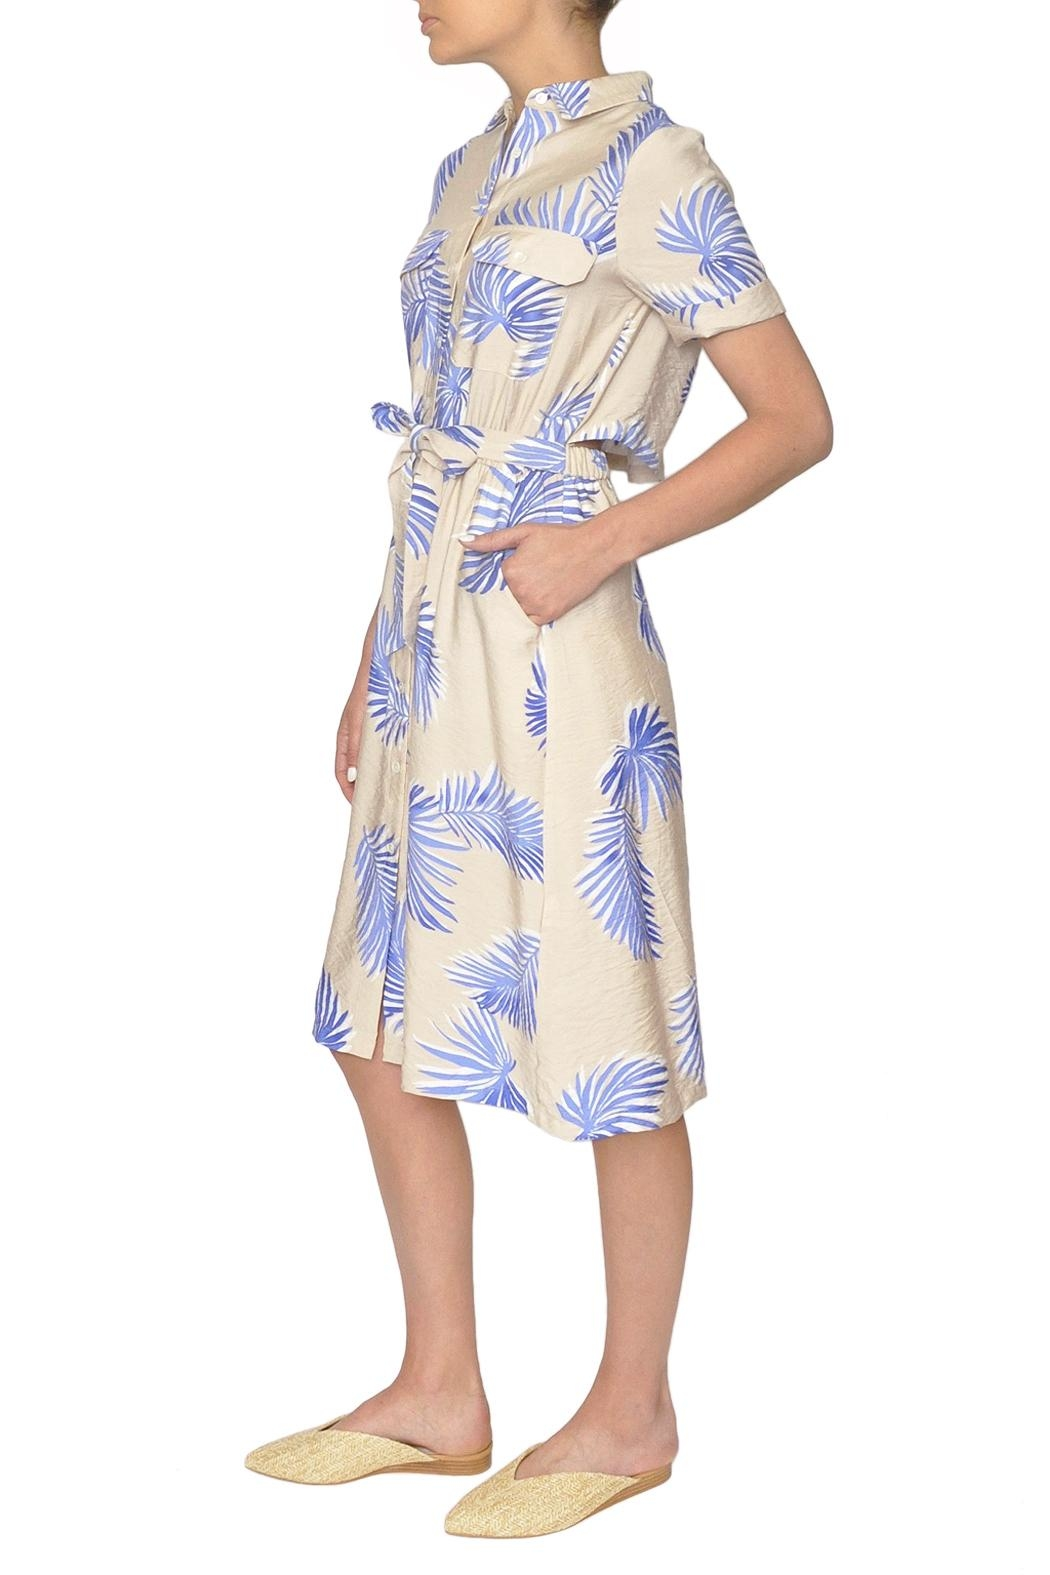 FRNCH Palm Print Dress - Front Full Image